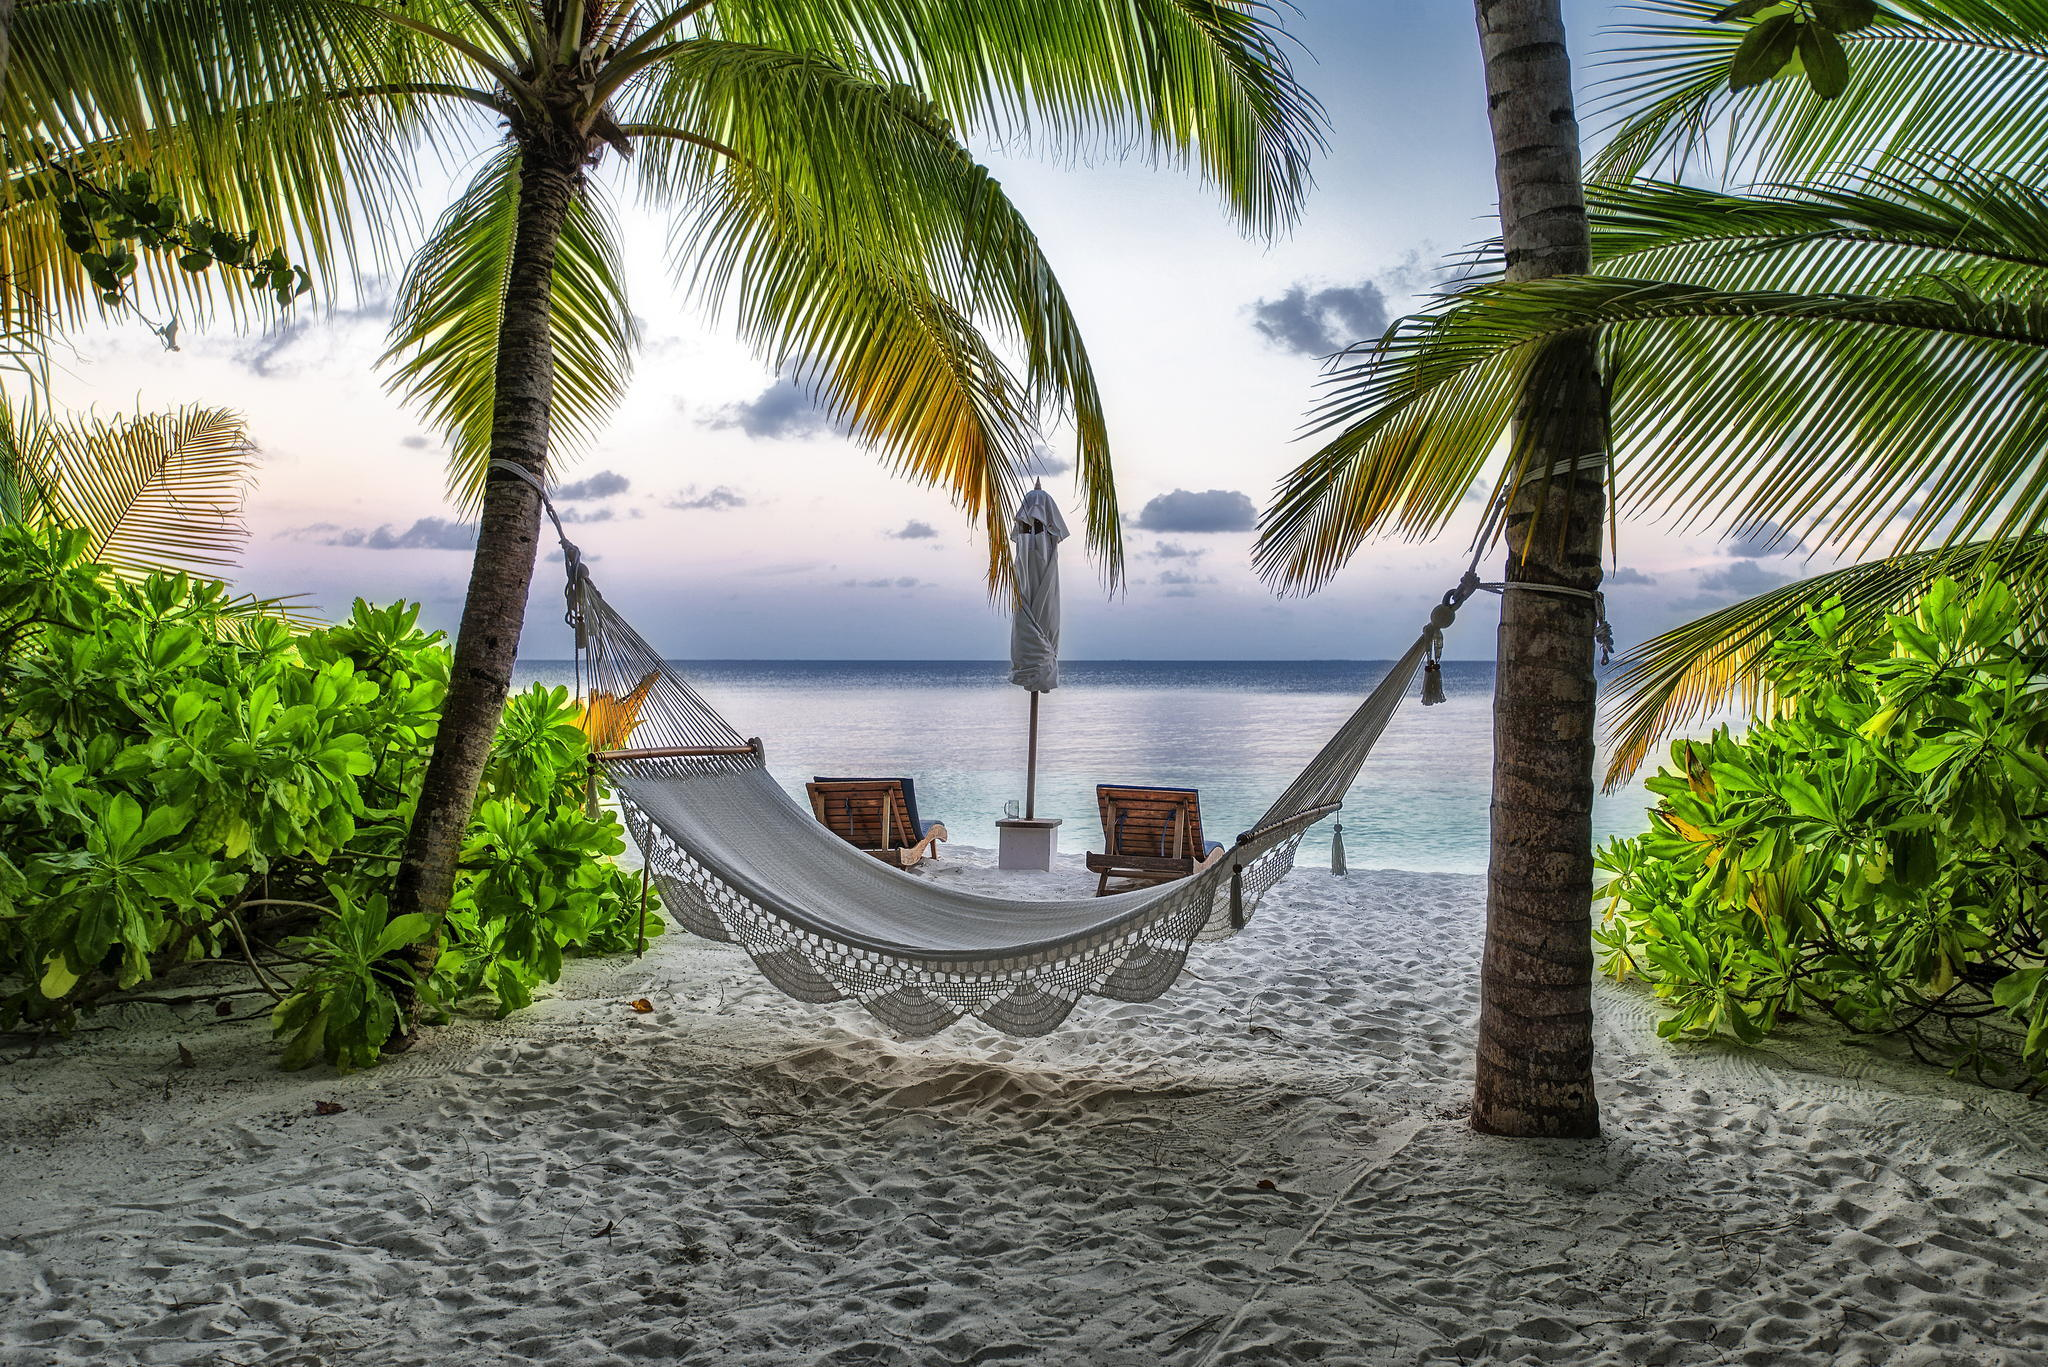 Construction Humaine Hammock Maldives Seaside Plage Vacances Tropical ...